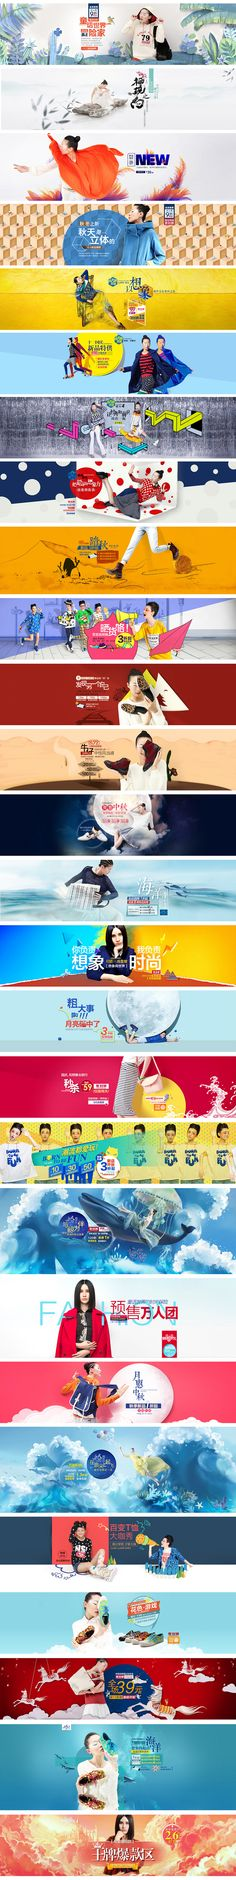 First language poster [a] large collection Banner Design Inspiration, Web Banner Design, Layout Design, Web Banners, Fashion Banner, Header Banner, Event Banner, Chinese Design, Banner Template